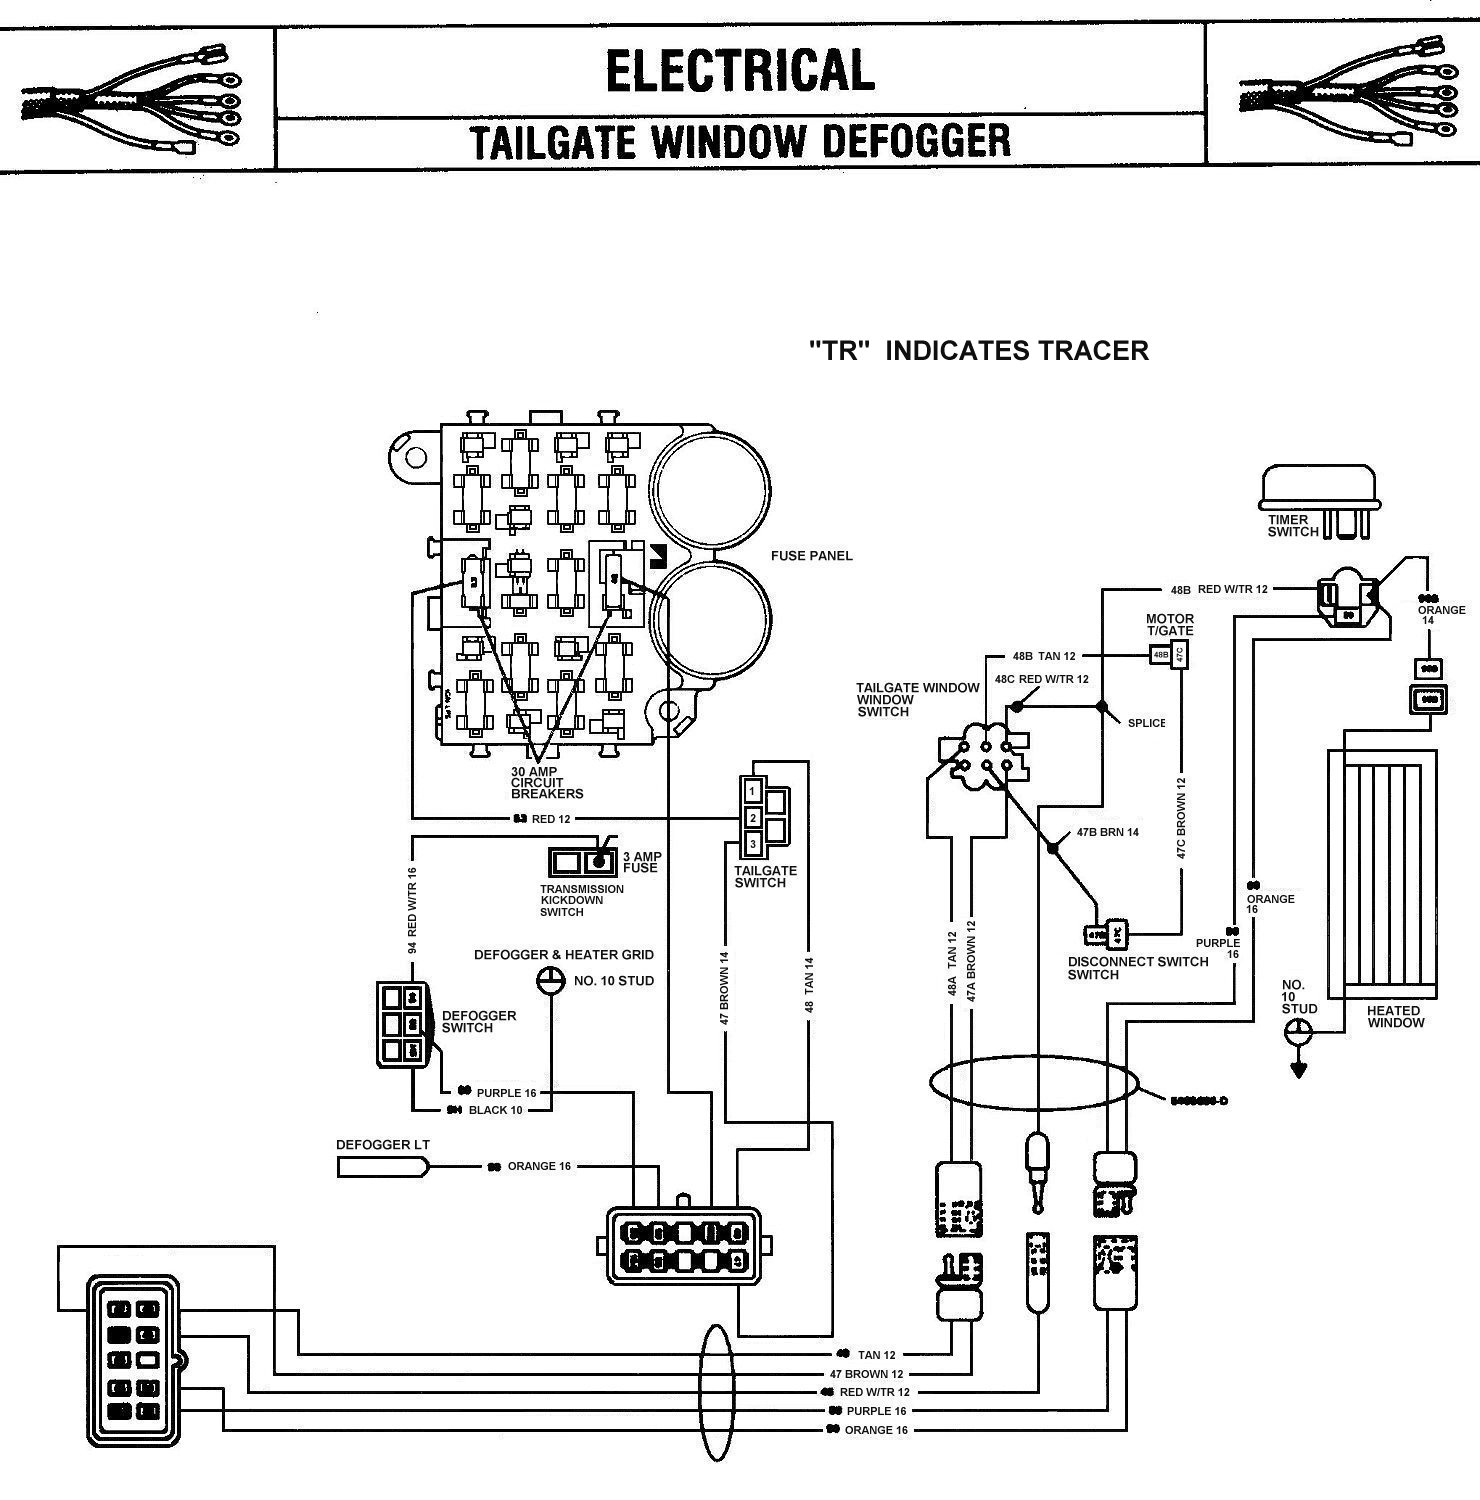 [SCHEMATICS_4NL]  Durant Wiring Diagram. 1978 gmc c k wiring diagram database. pid wiring  diagram temperature. 55 chevy belair wiring diagram free picture wiring  library. mg30dfx wiring diagram wiring diagram virtual fretboard. chevrolet  car | Durant Wiring Diagram |  | 2002-acura-tl-radio.info